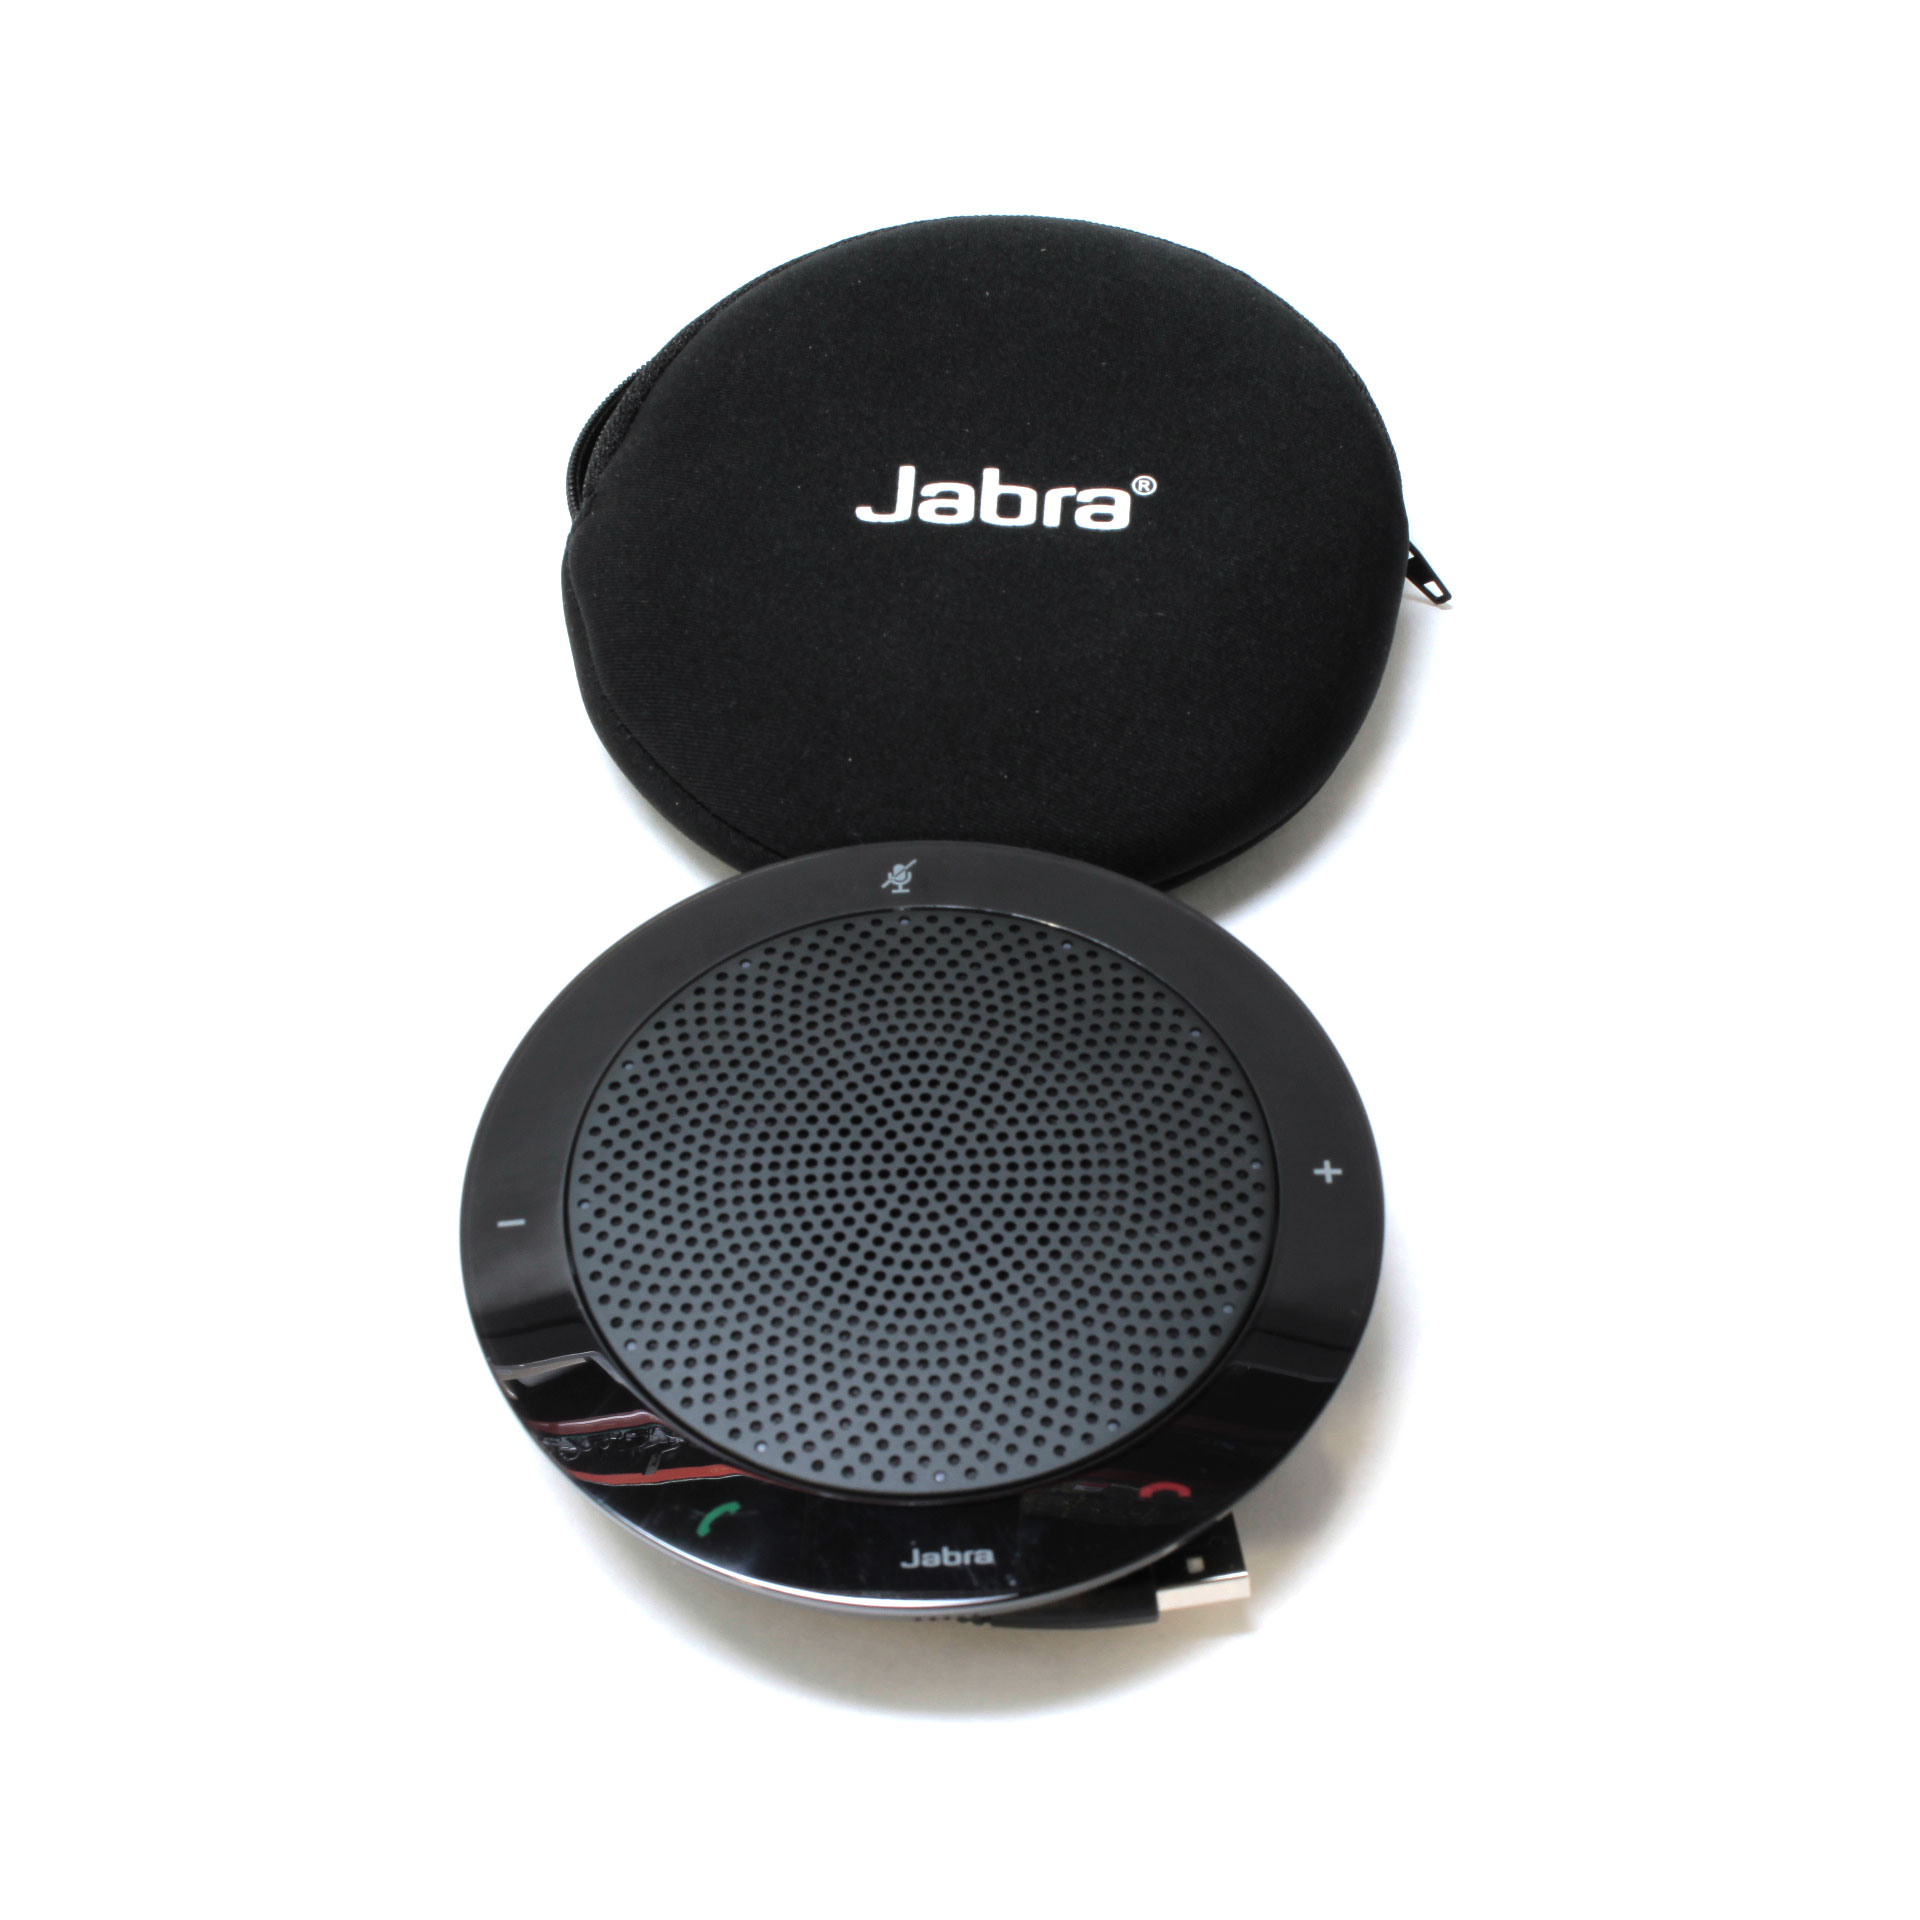 Jabra SPEAK 410 Speaker Phone 7410-209 conference conversation